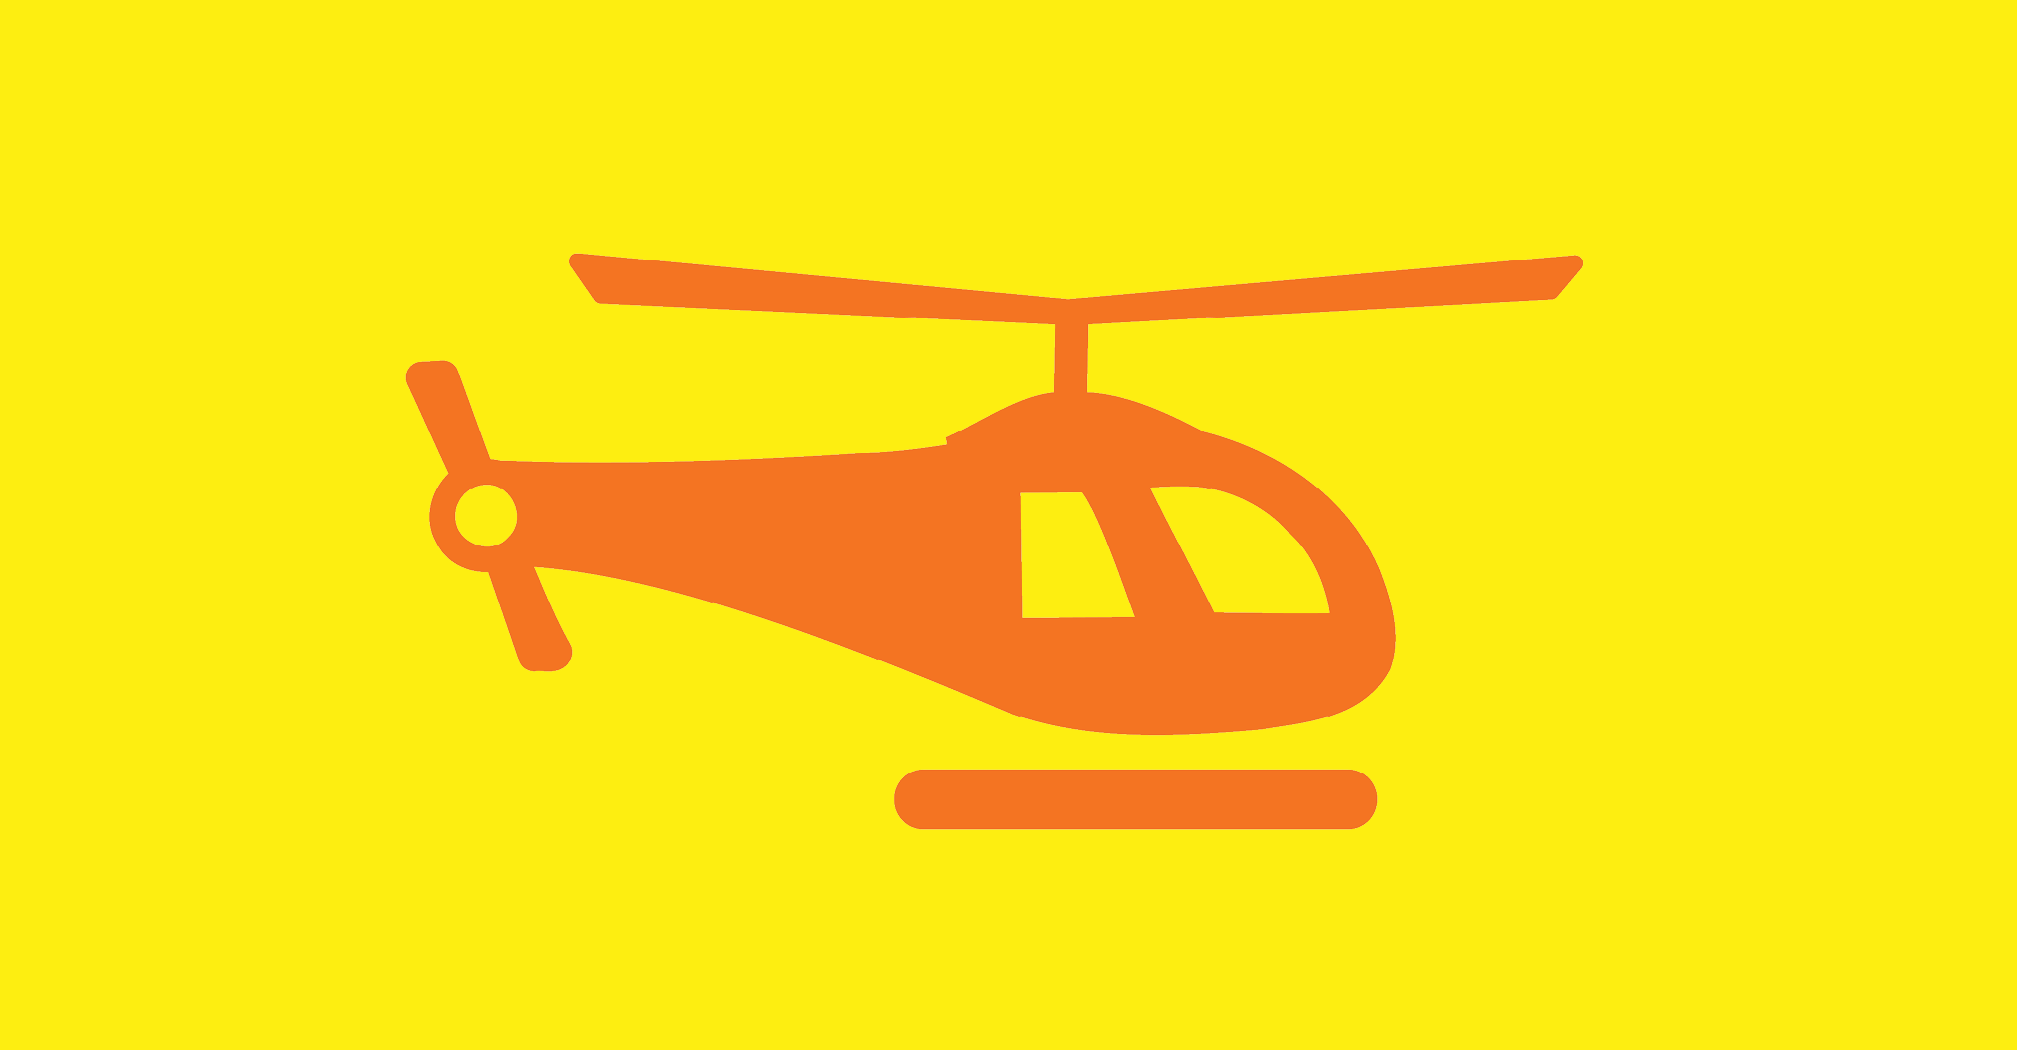 Helicopter_2.png